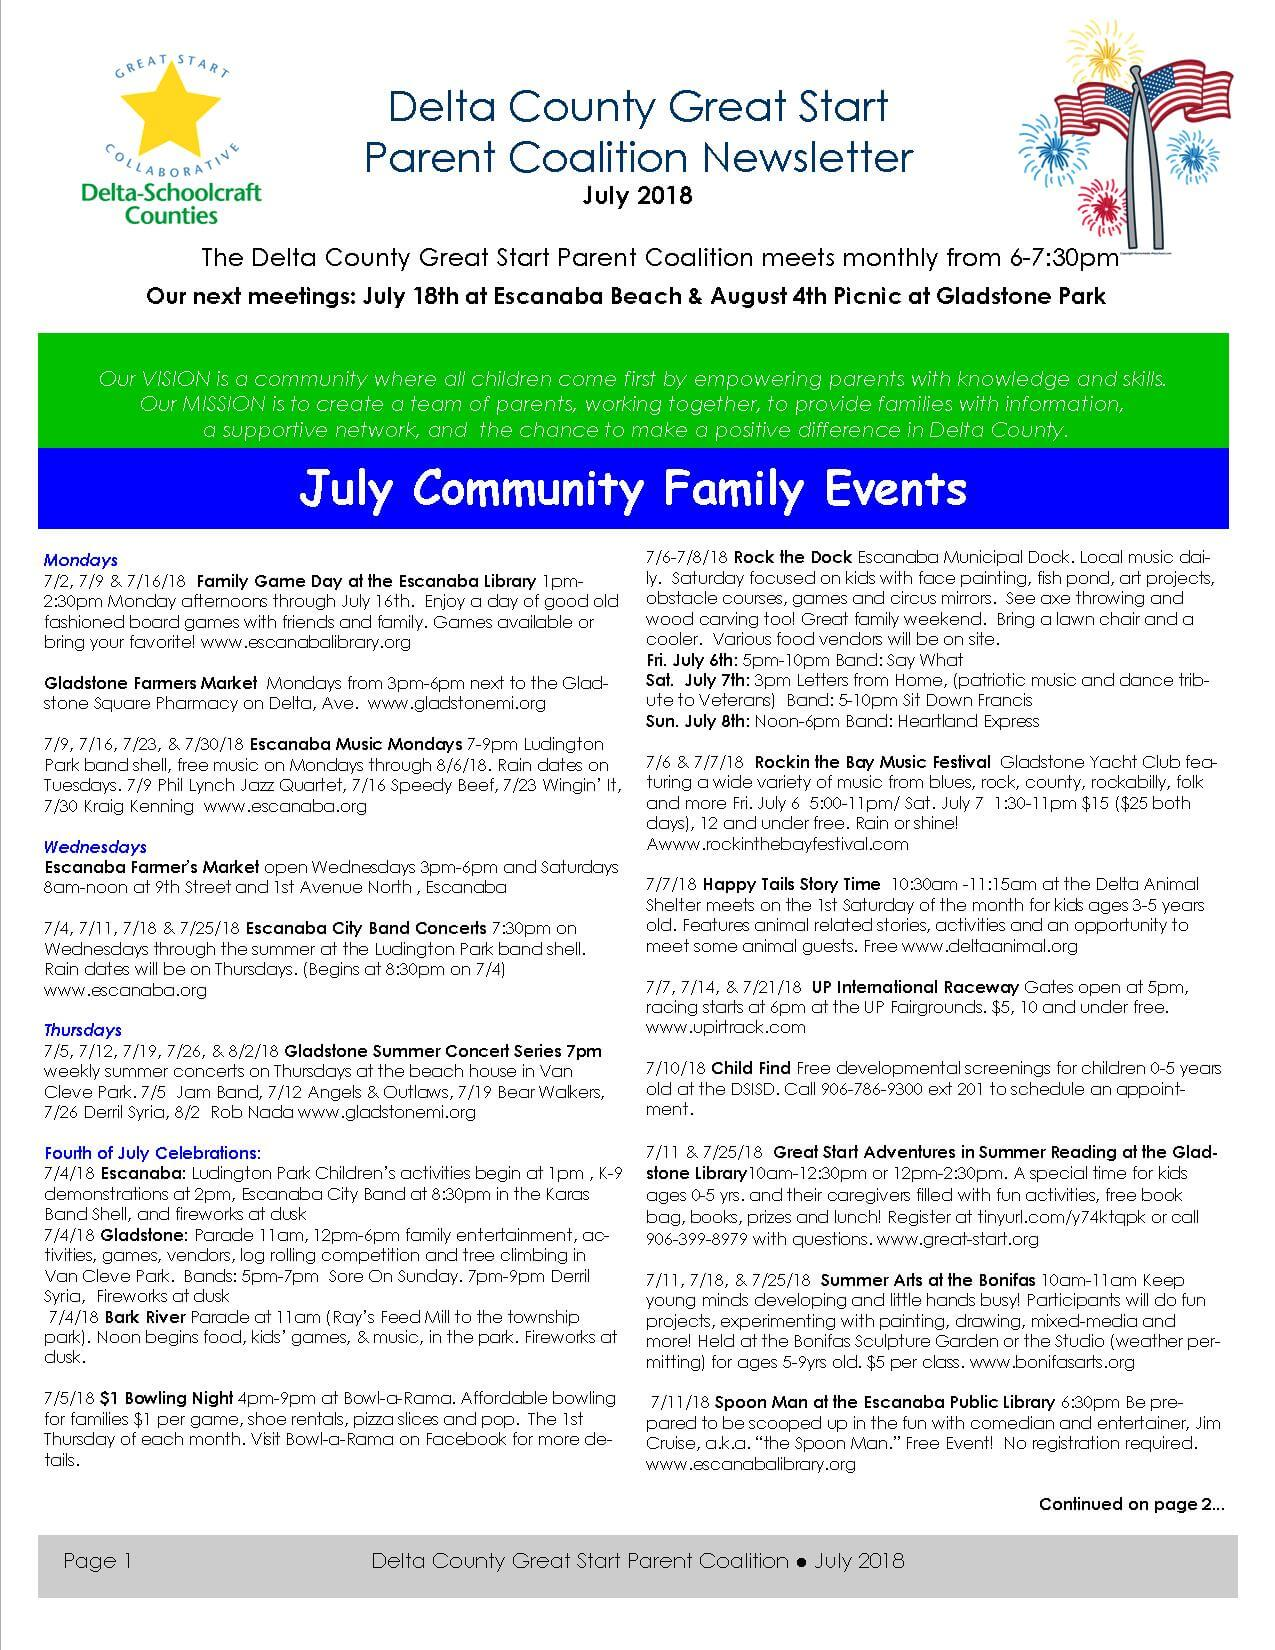 Delta County July newsletter pg 1 of 4